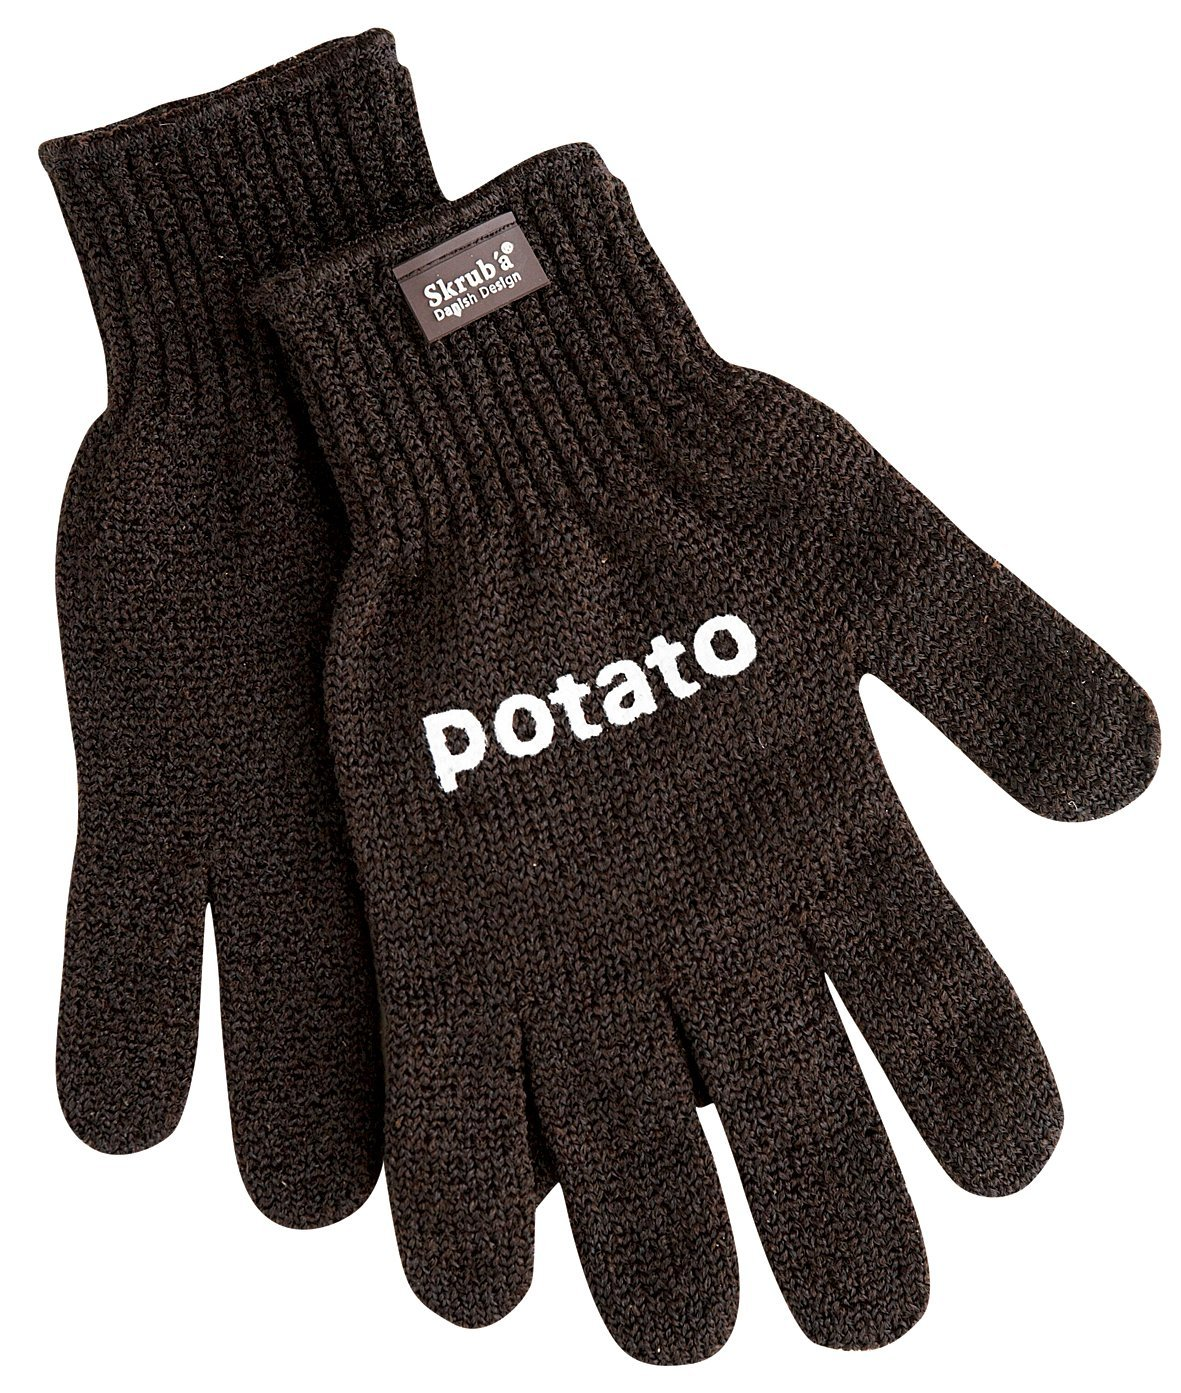 Skruba Glove for Potatoes